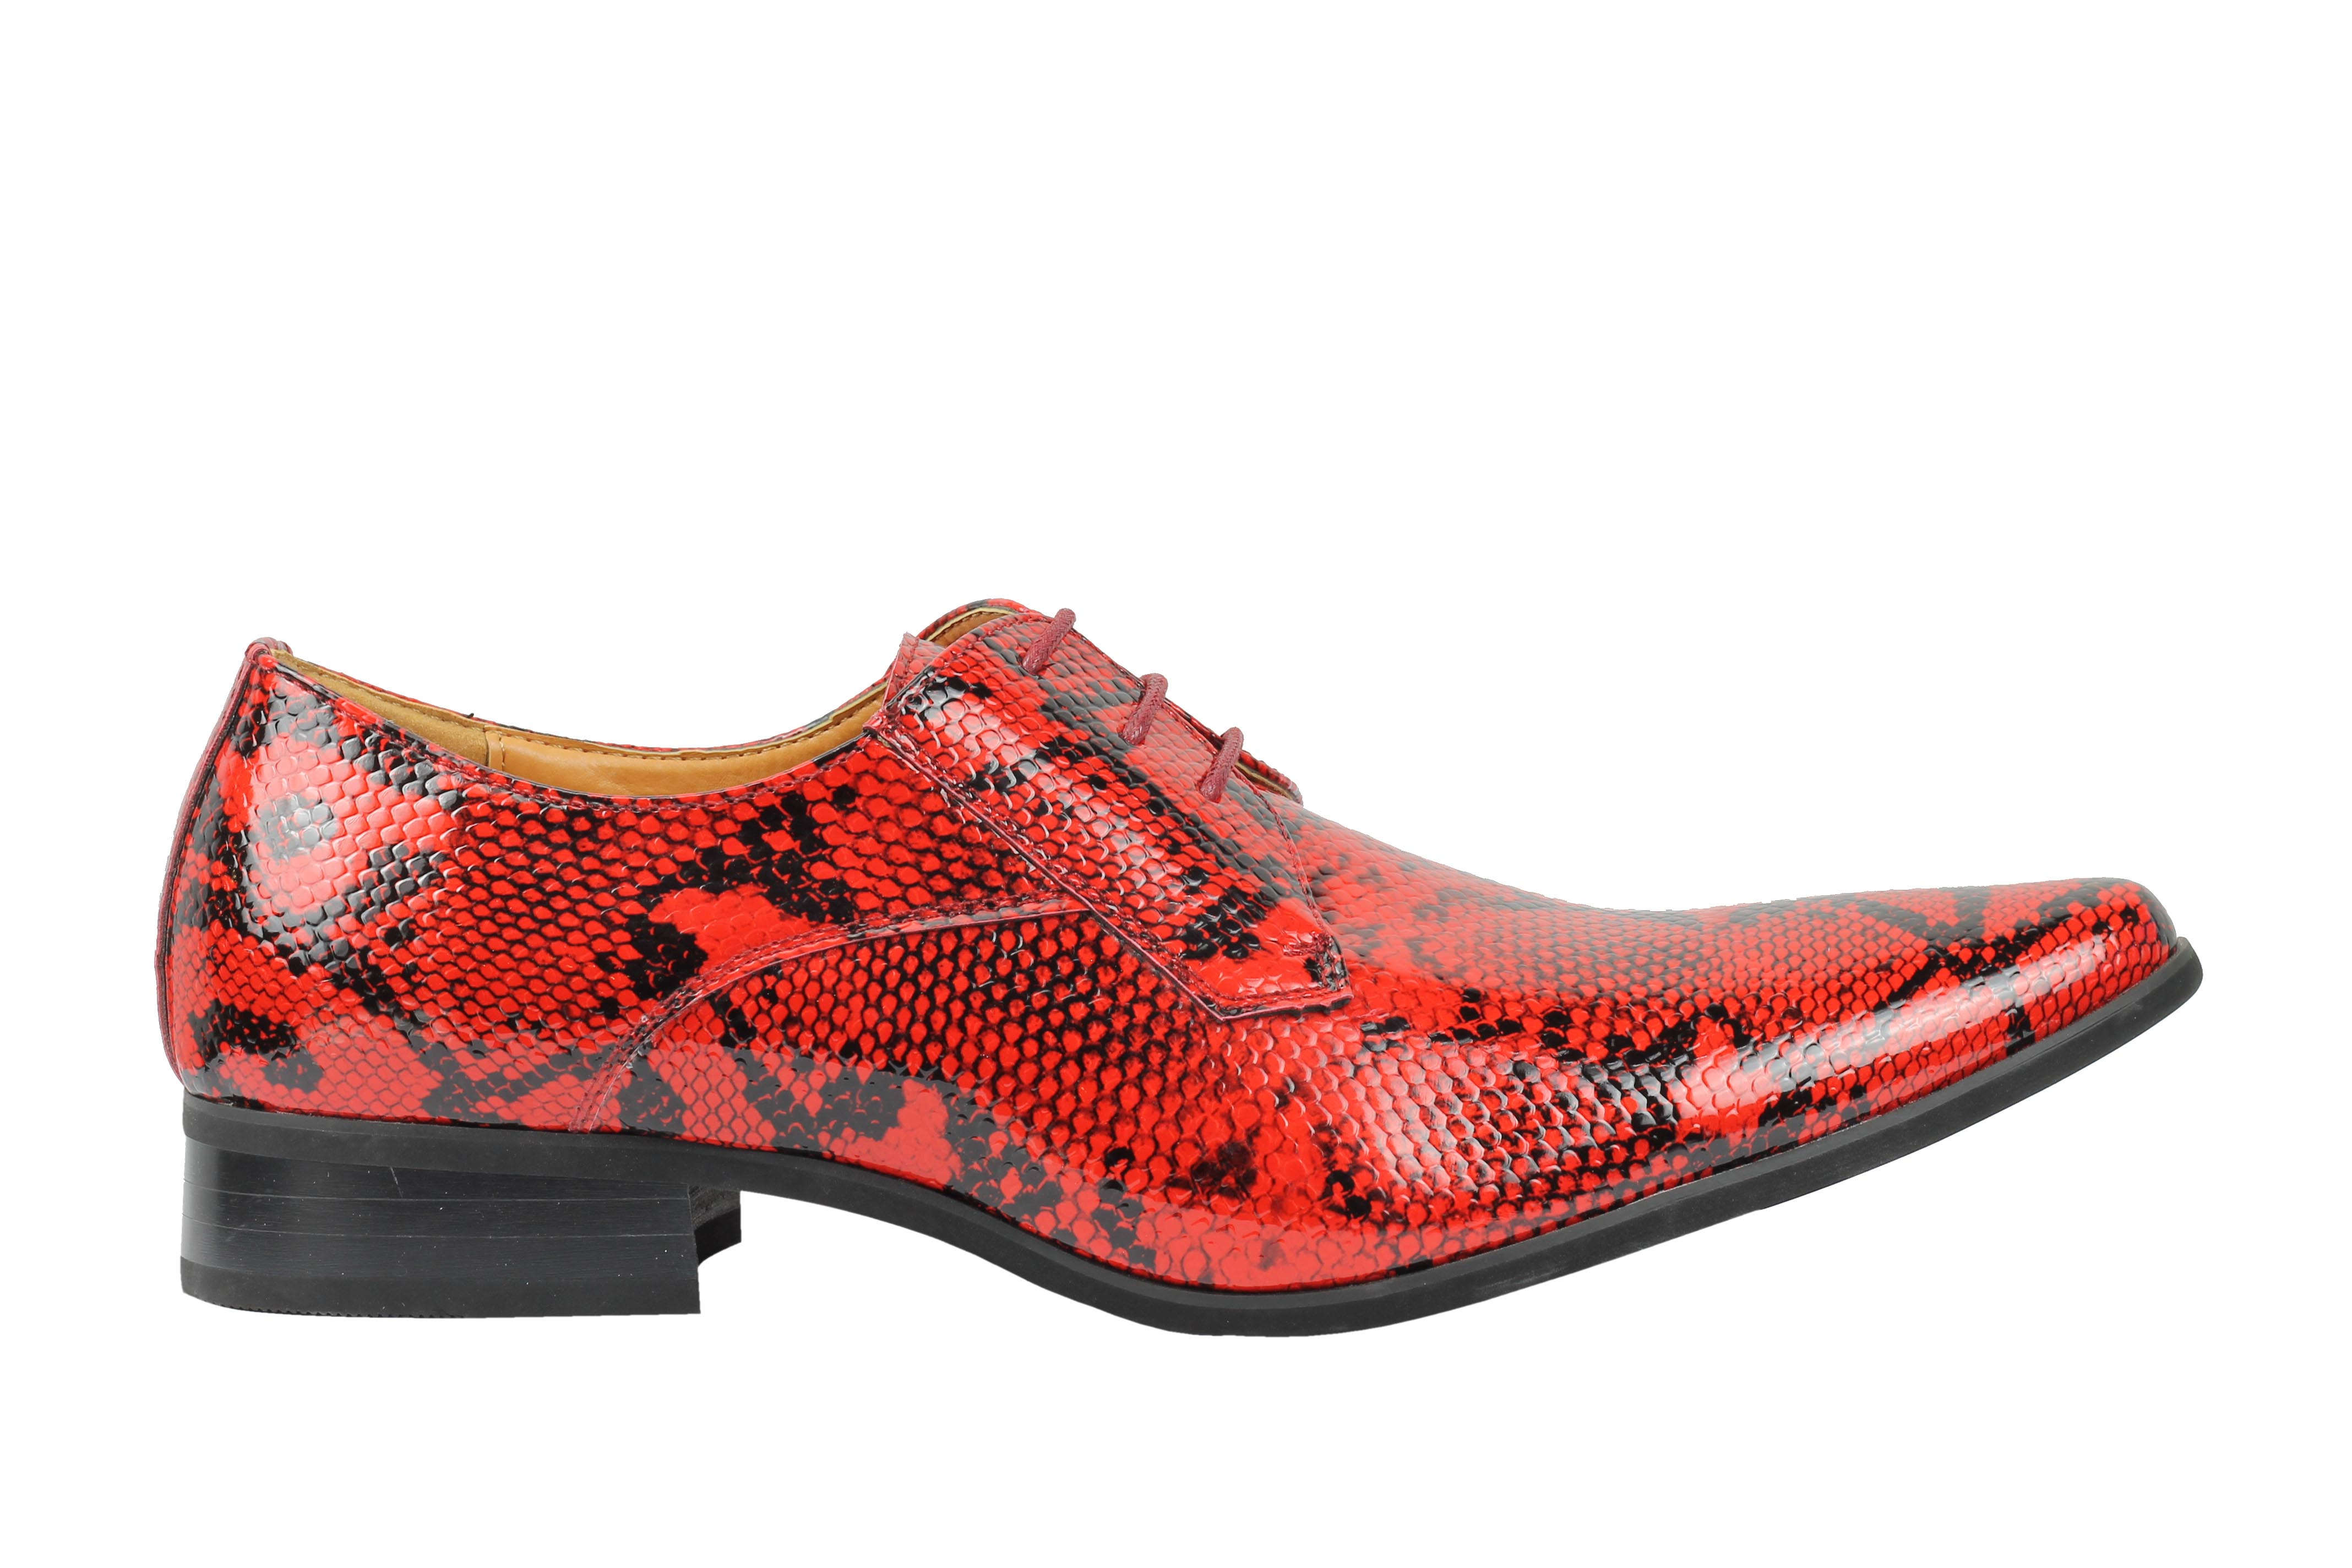 Mens-Leather-Lined-Snake-Skin-Print-Shiny-Patent-Leather-Smart-Party-Retro-Shoes thumbnail 21